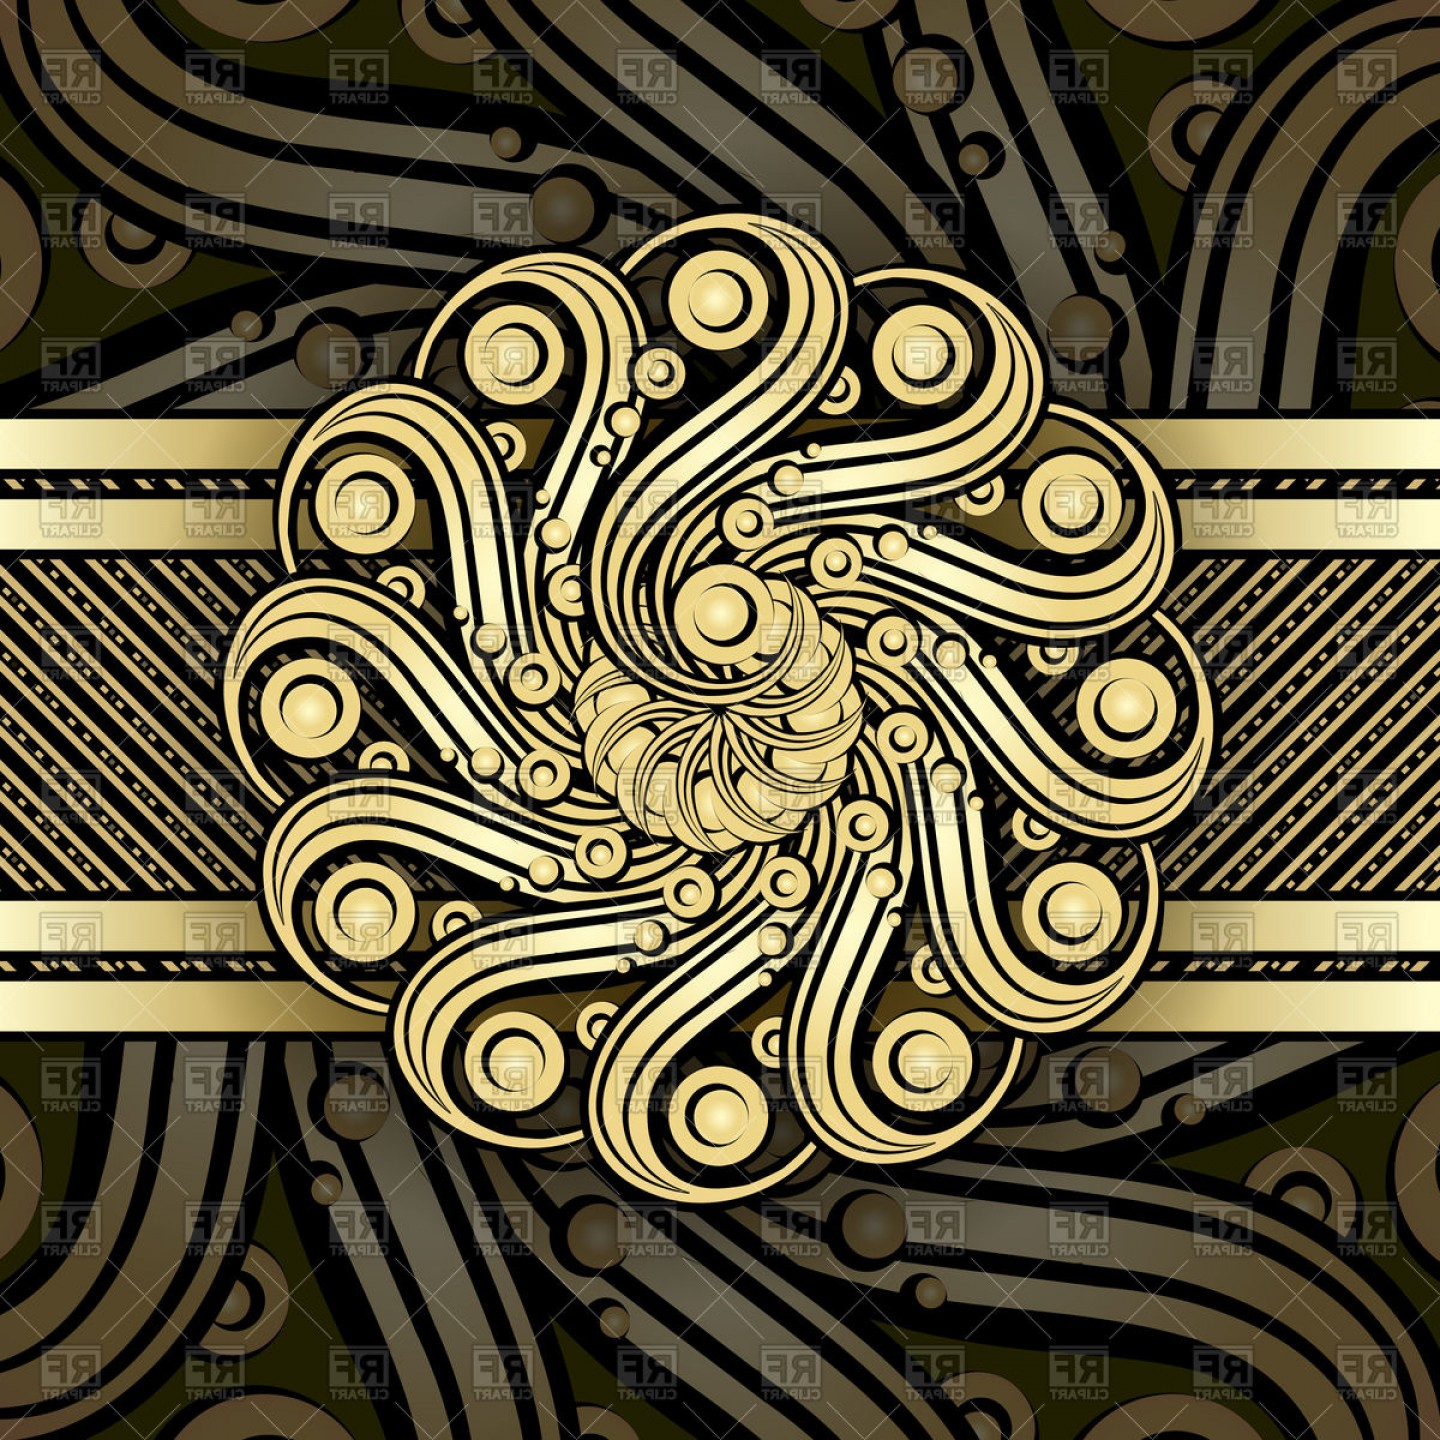 1440x1440 Steampunk Background With Metallic Swirl Elements Vector Clipart